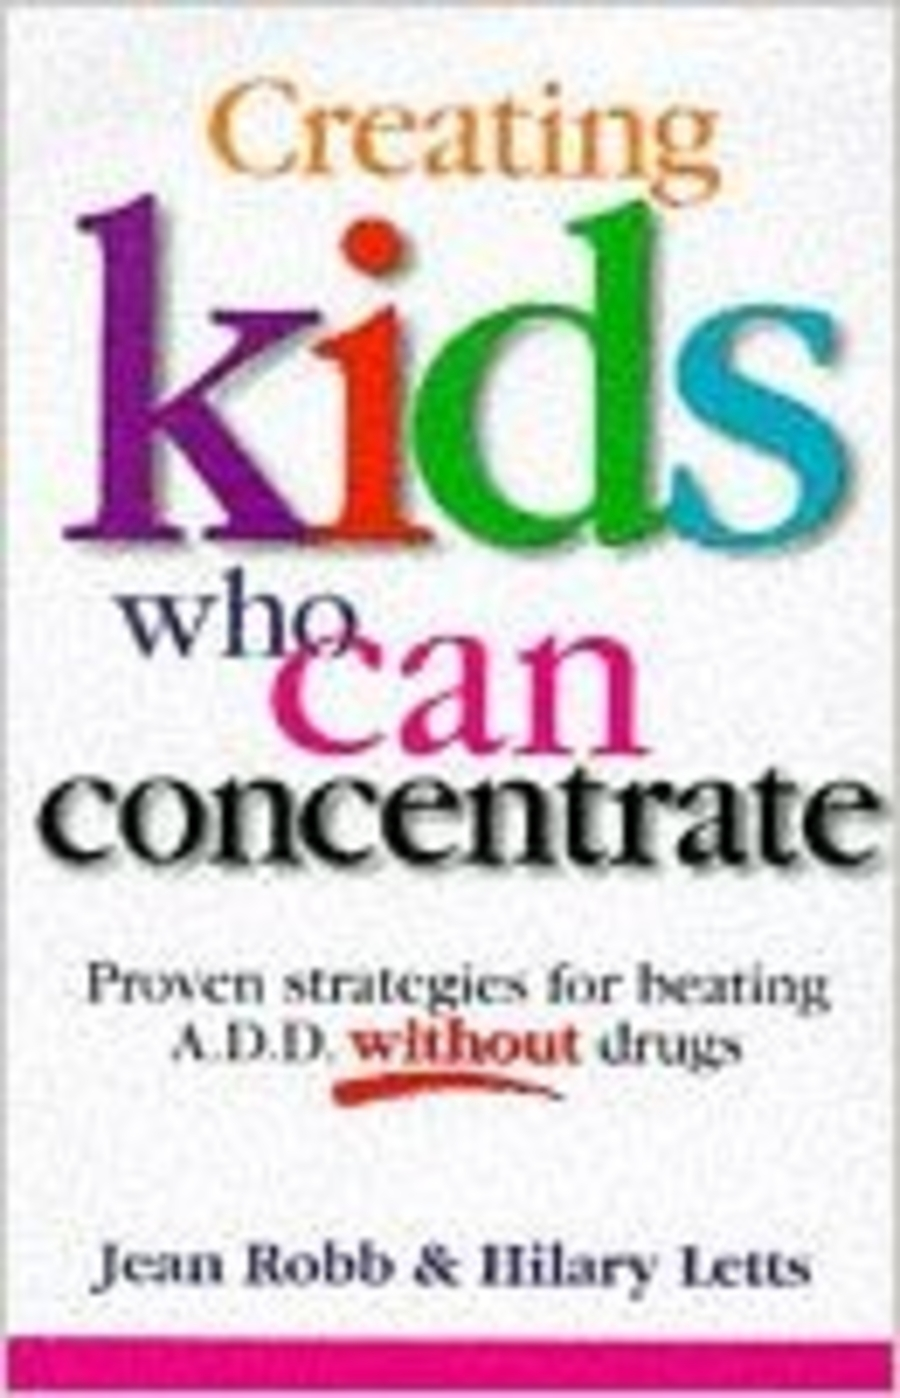 Creating kids who can concentrate